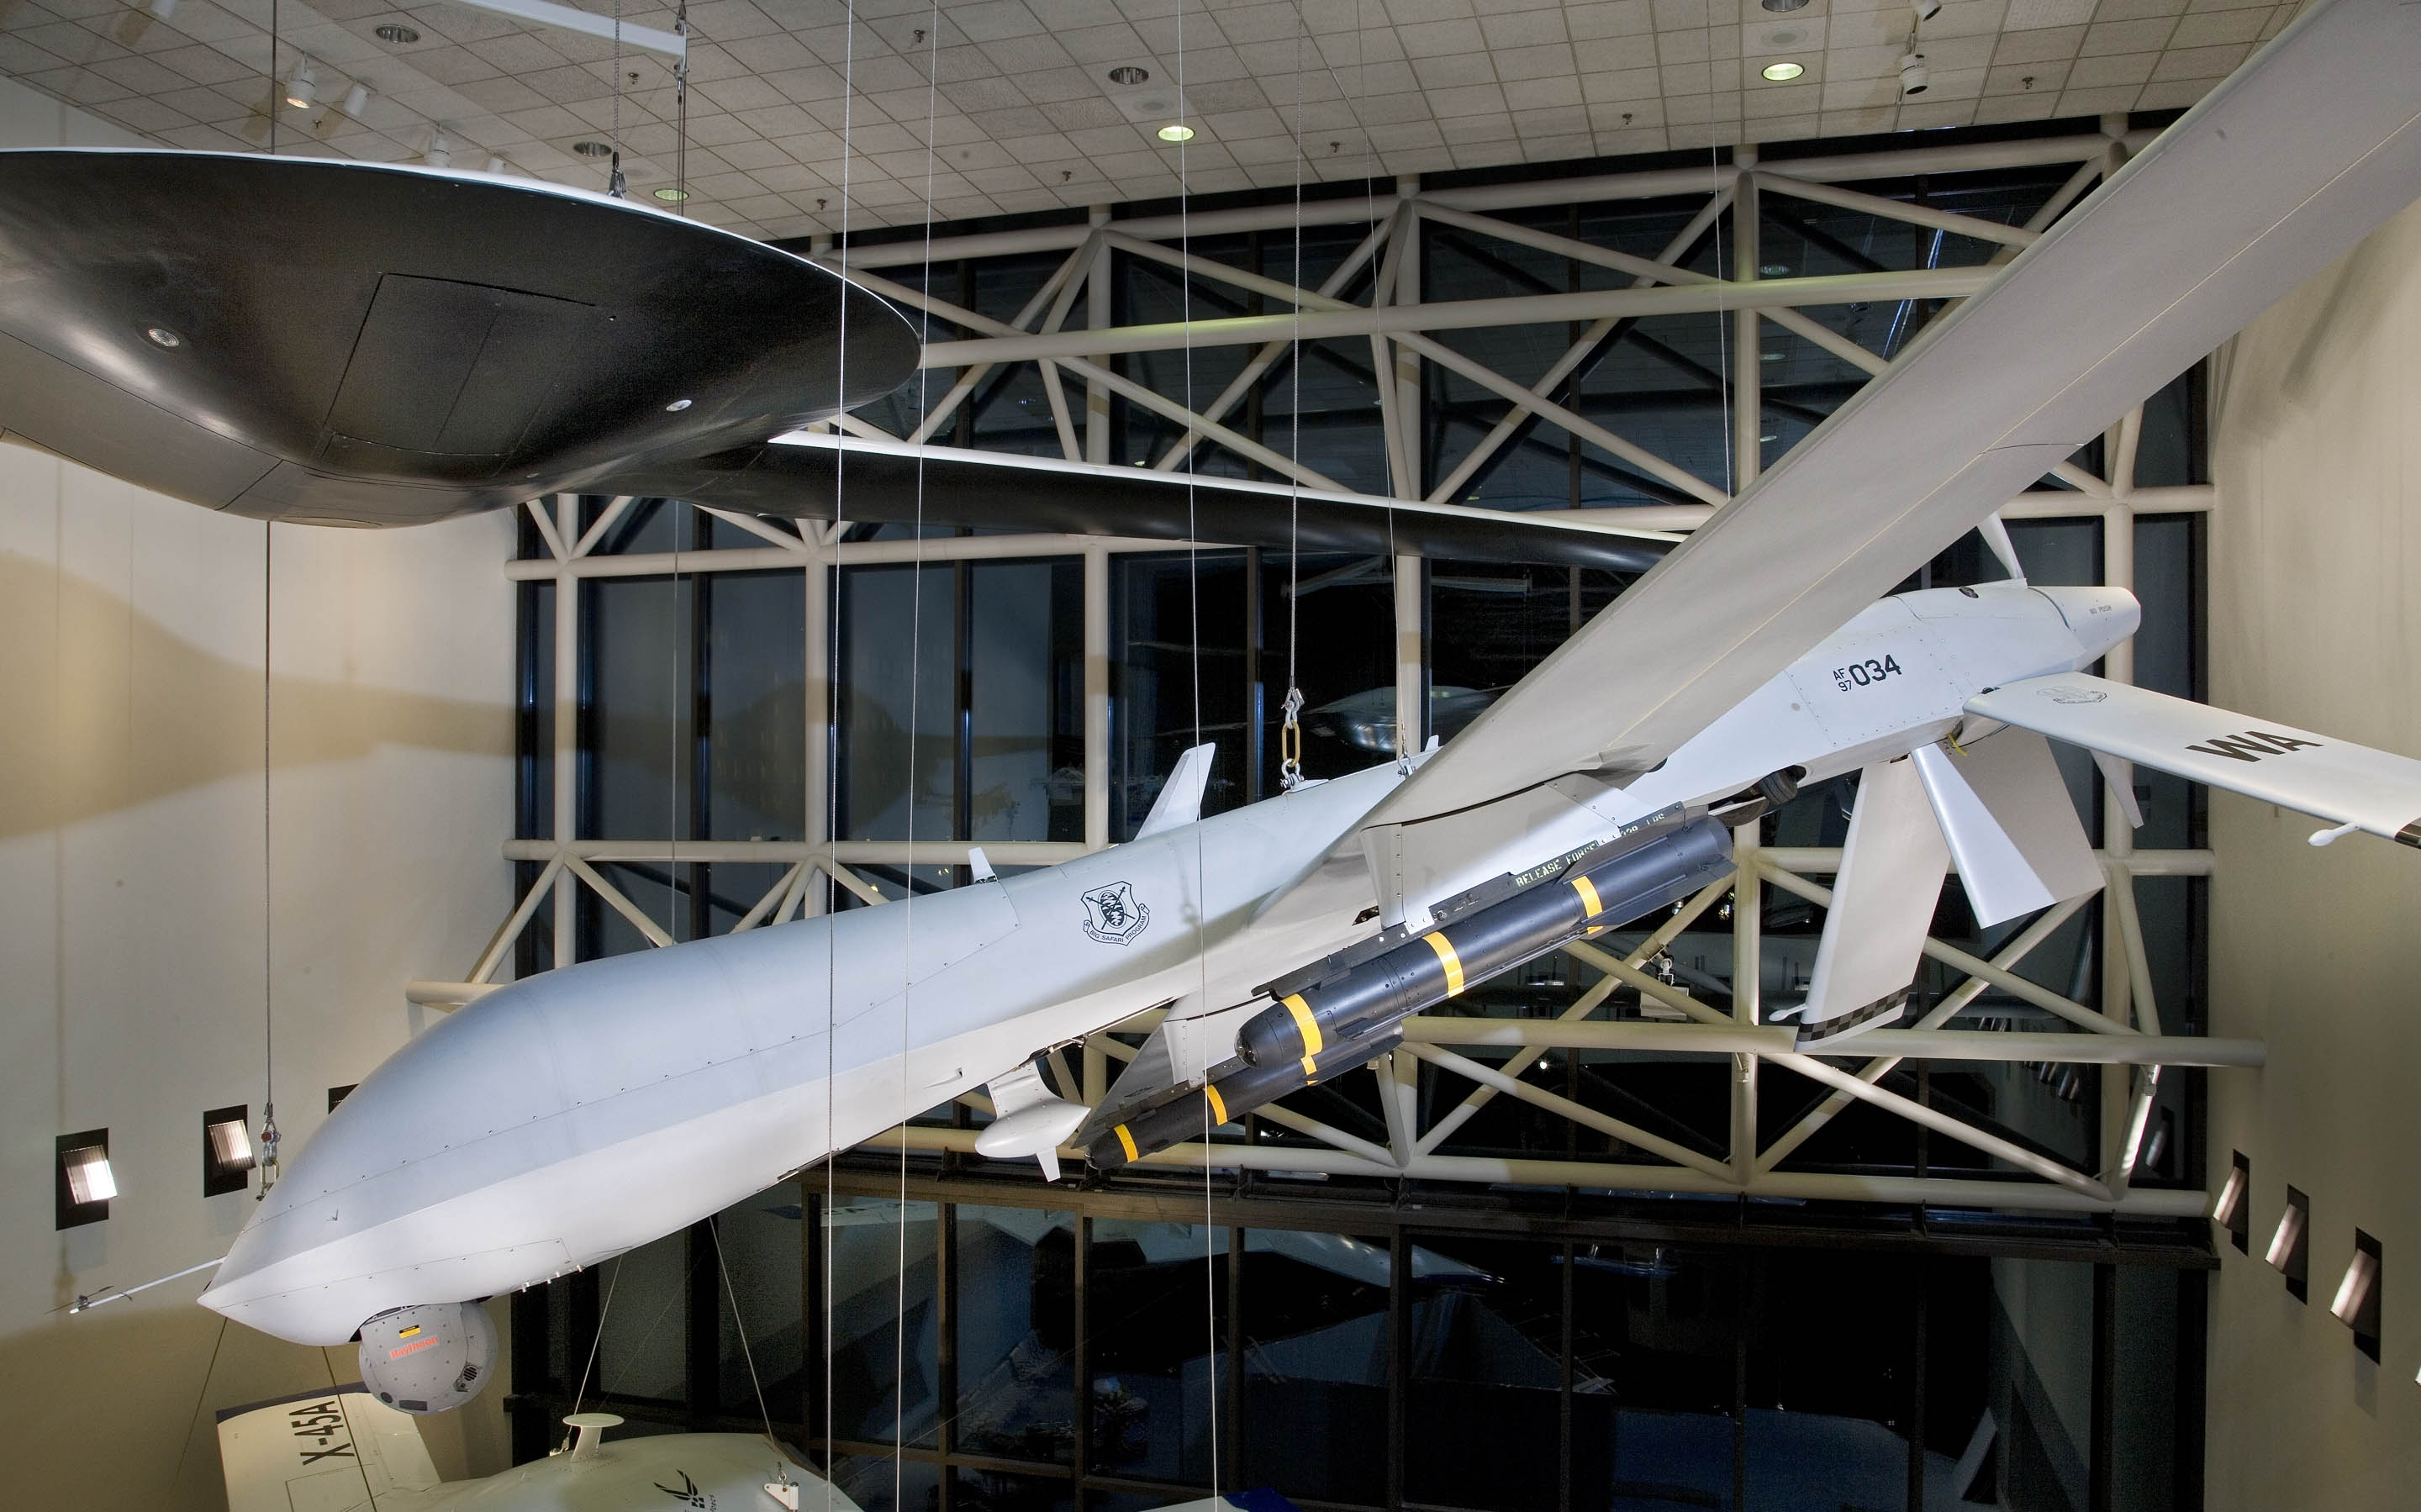 Military Unmanned Aerial Vehicles Exhibit National Air And